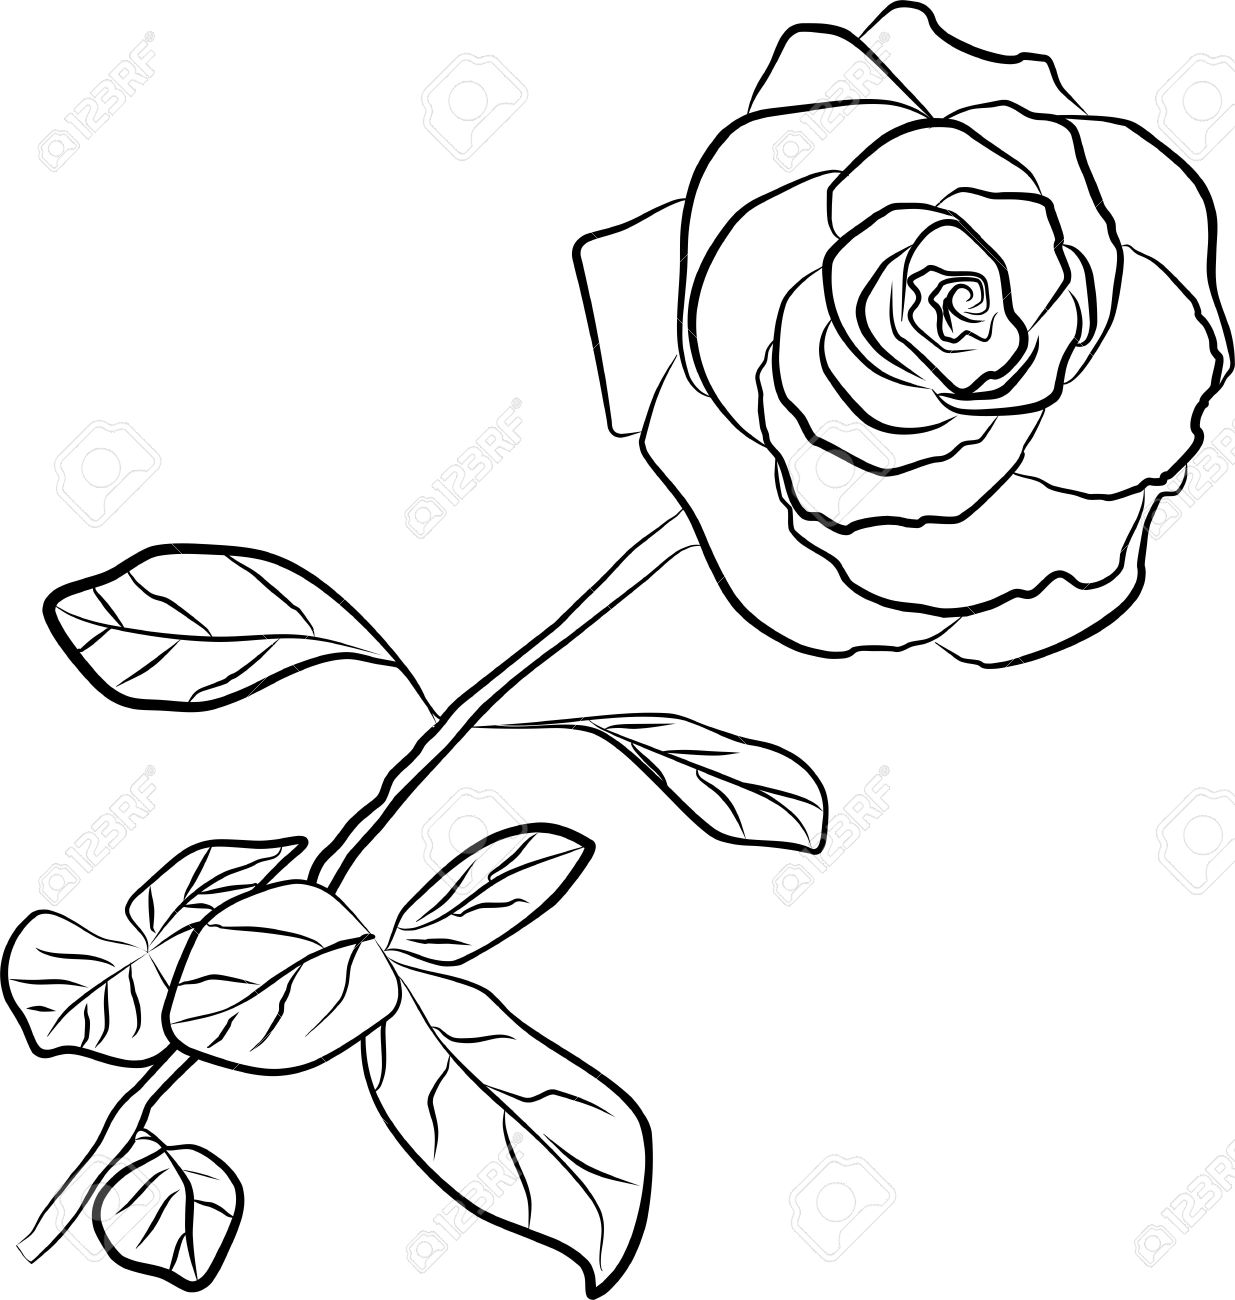 Line Art Rose Flower : Knumathise rose clip art outline images